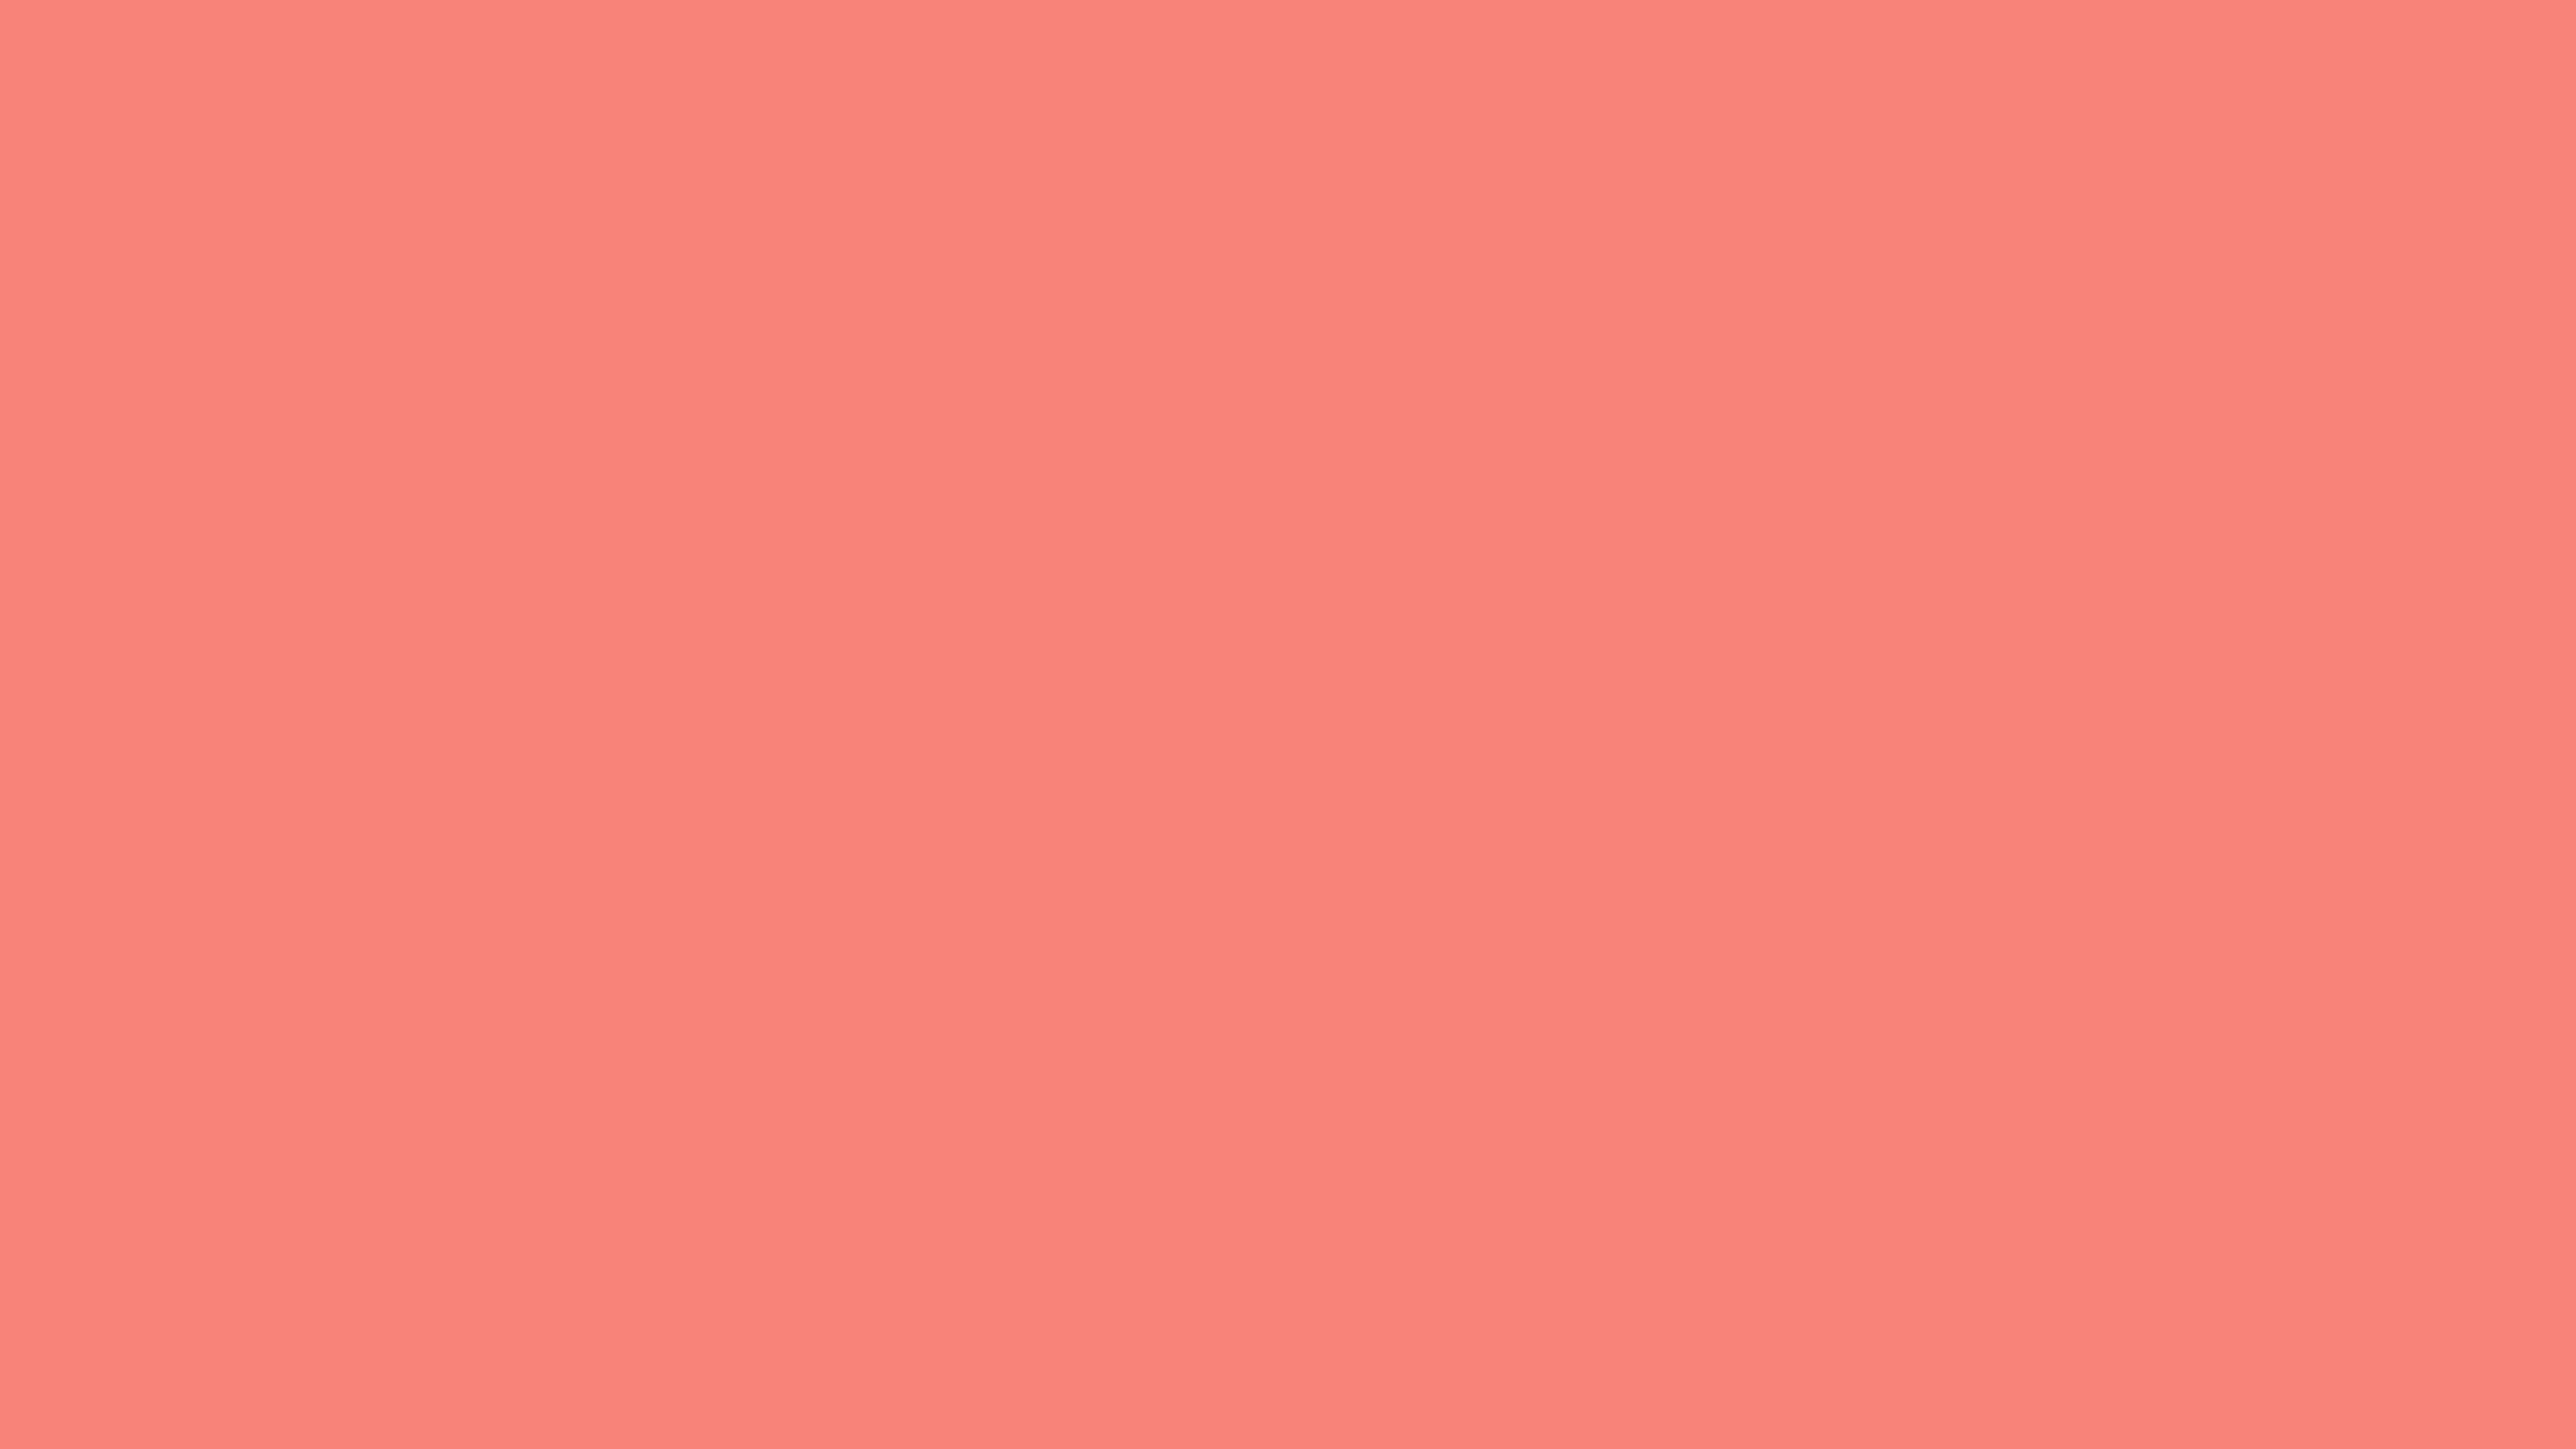 3840x2160 Coral Pink Solid Color Background